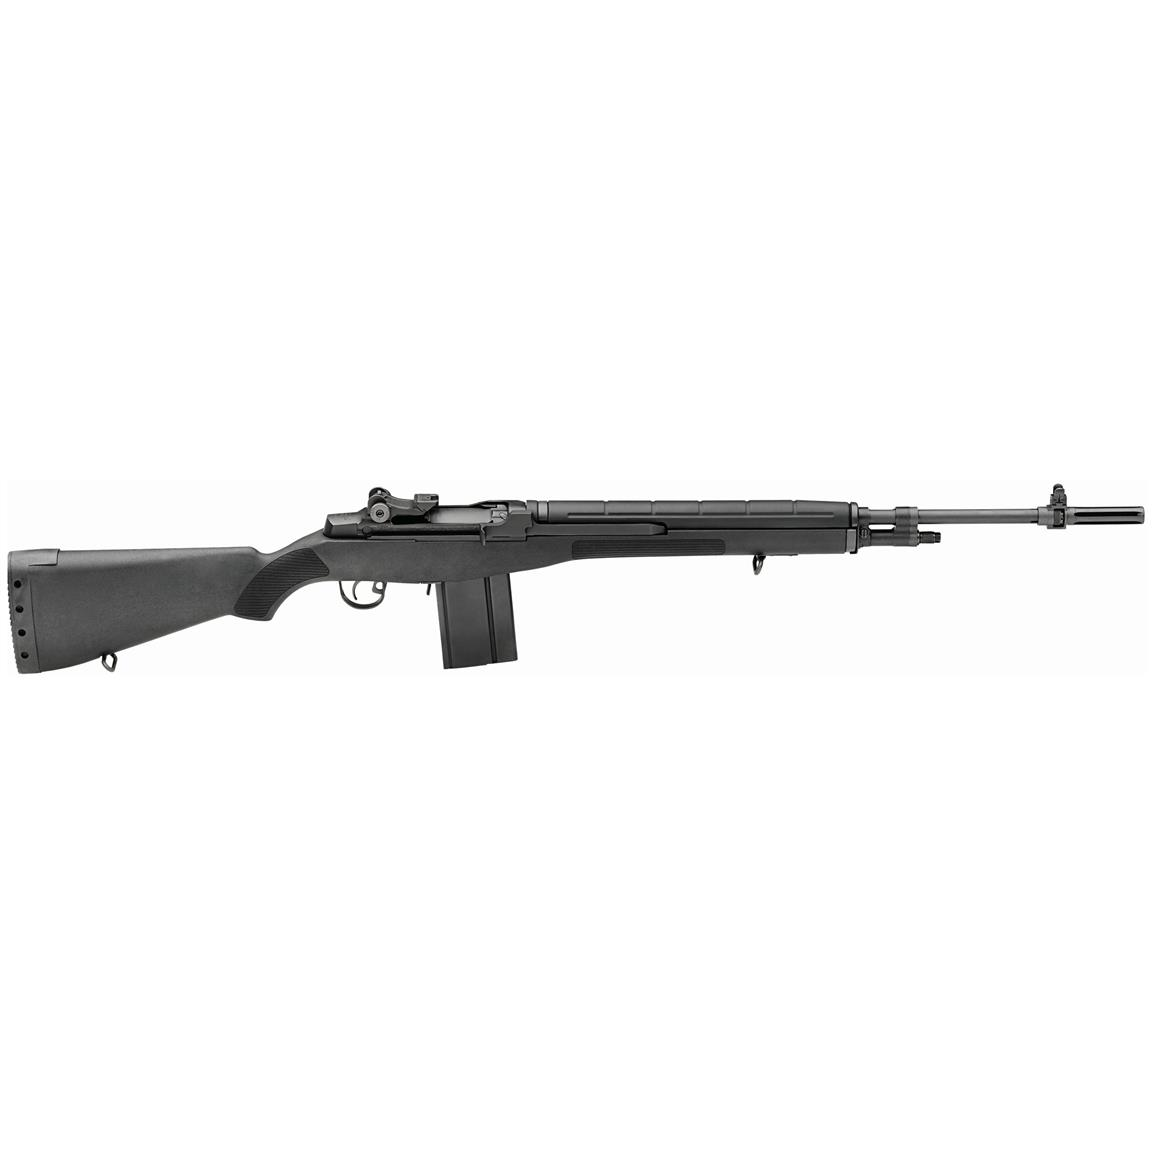 "Springfield M1A Standard, Semi-Automatic, .308 Winchester, 22"" Barrel, 10+1 Rounds"